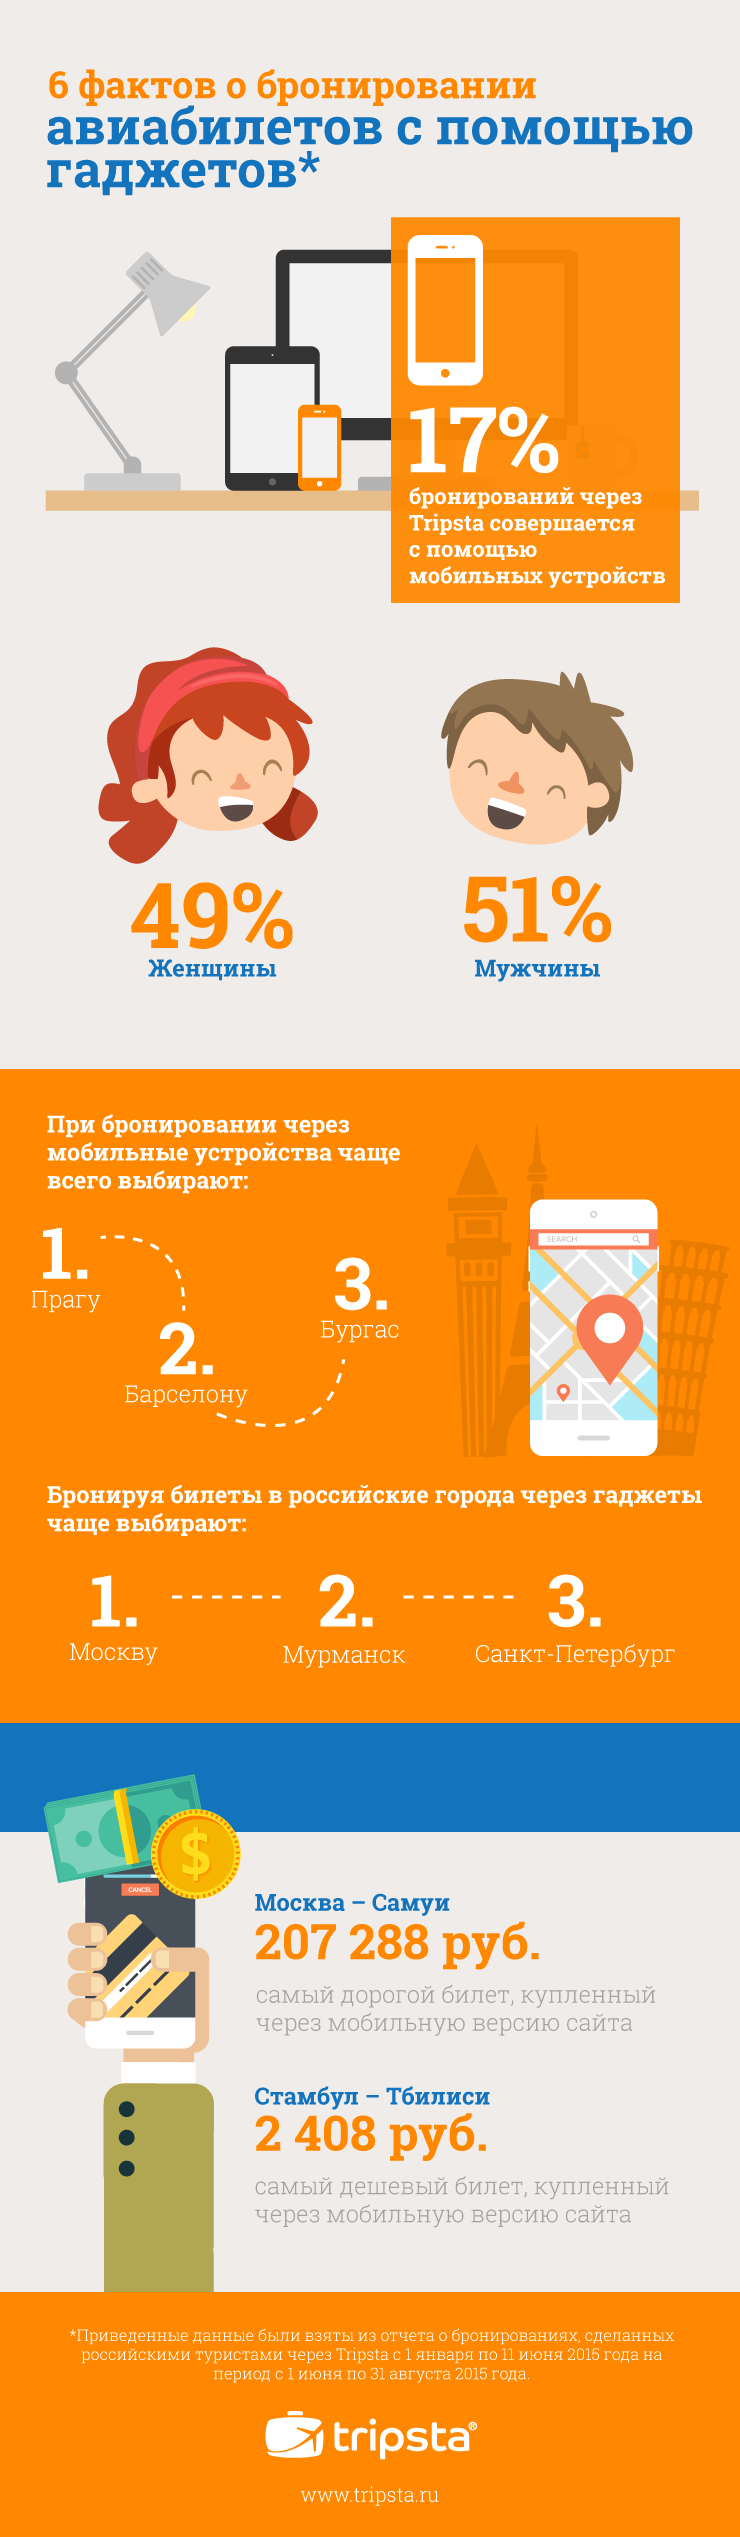 tripsta_mobile-trends_RU.png